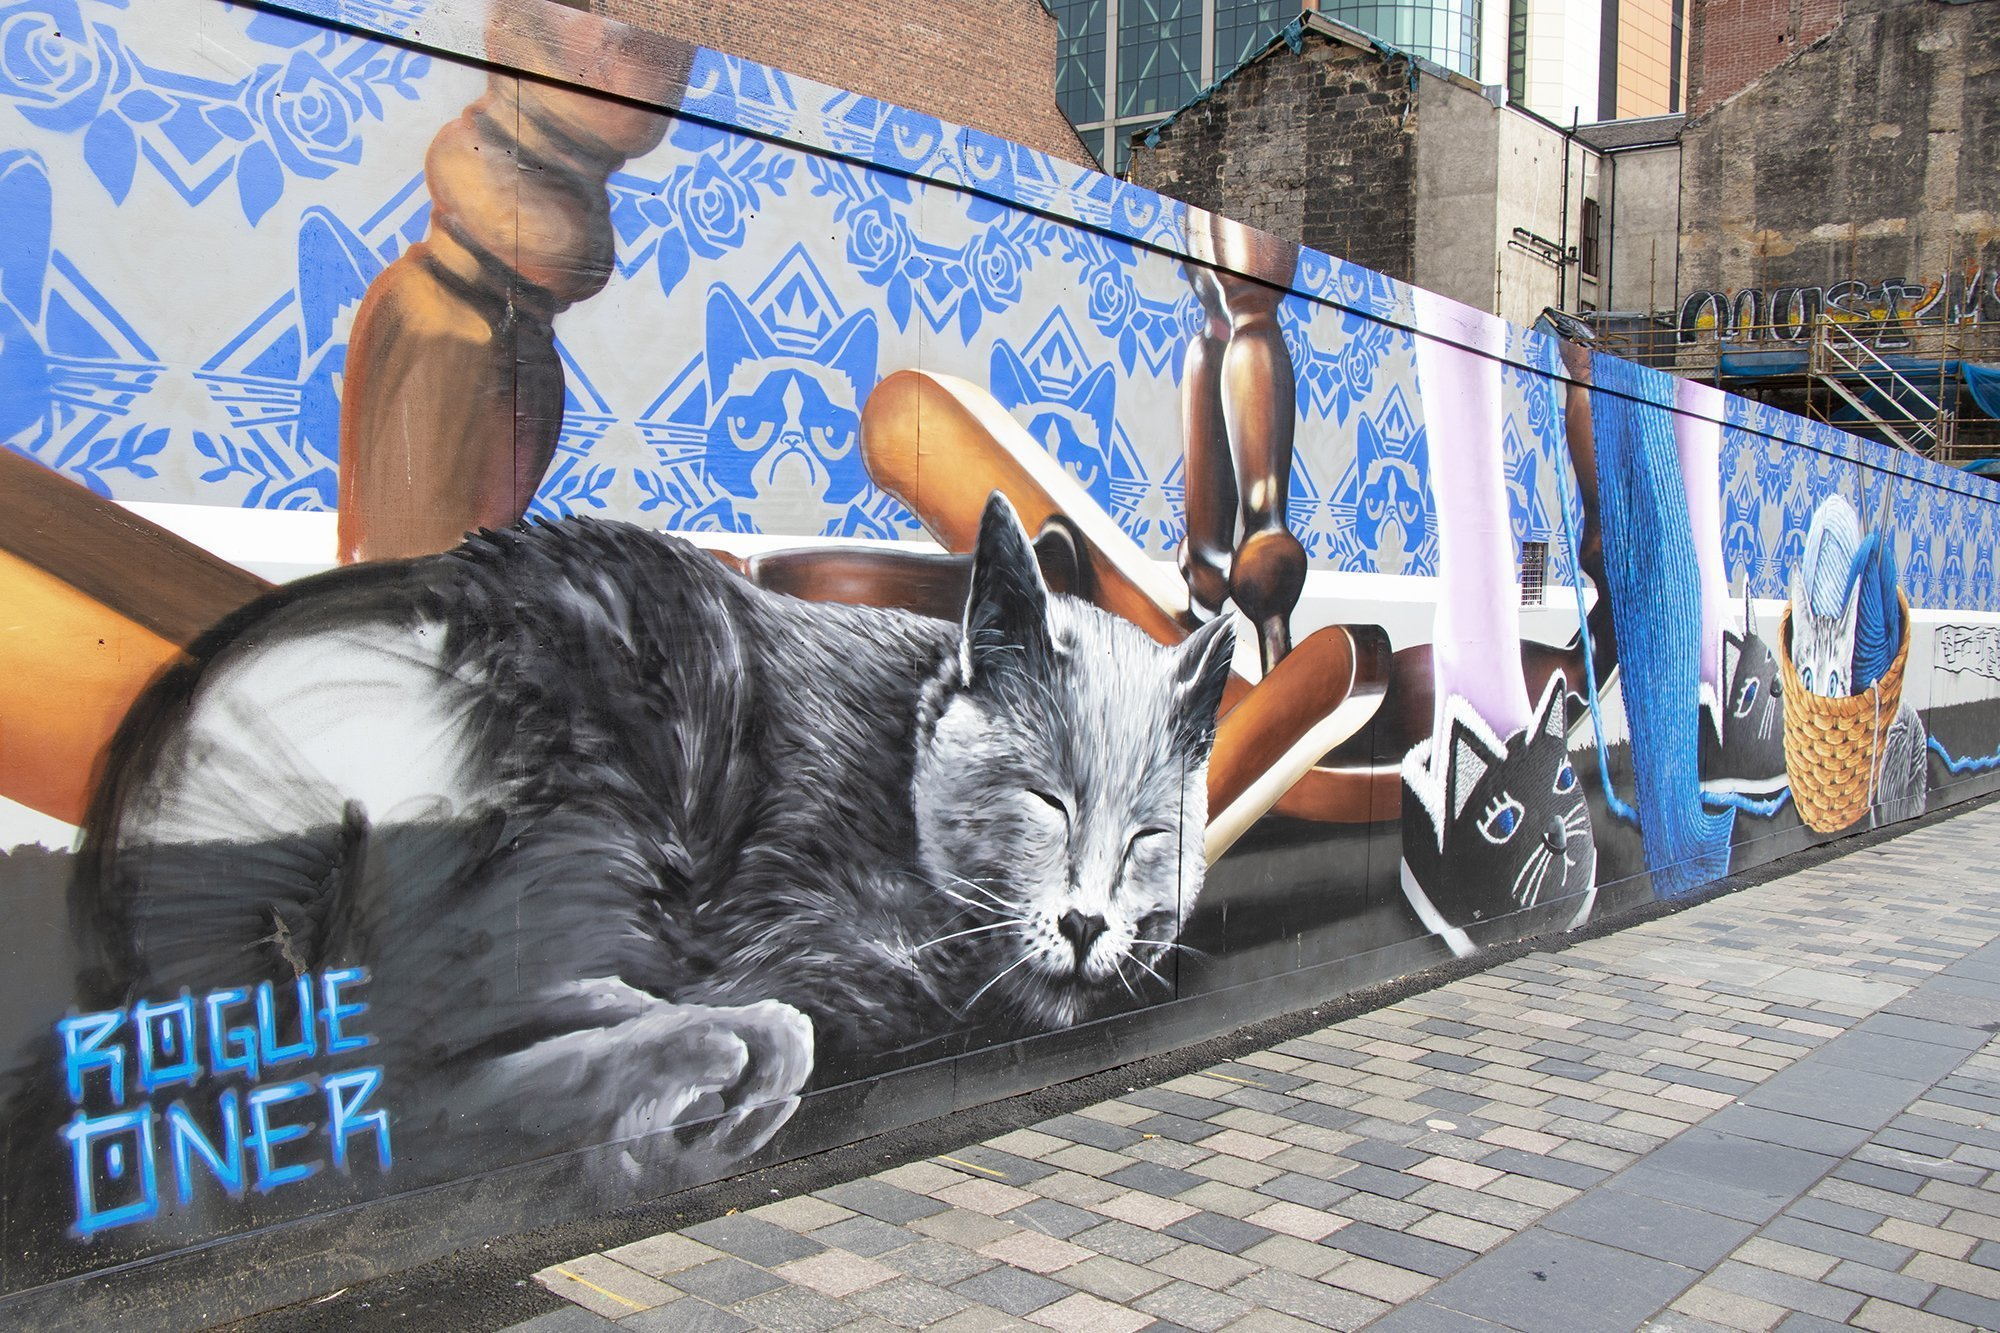 Crazy cat lady mural, Glasgow mural trail